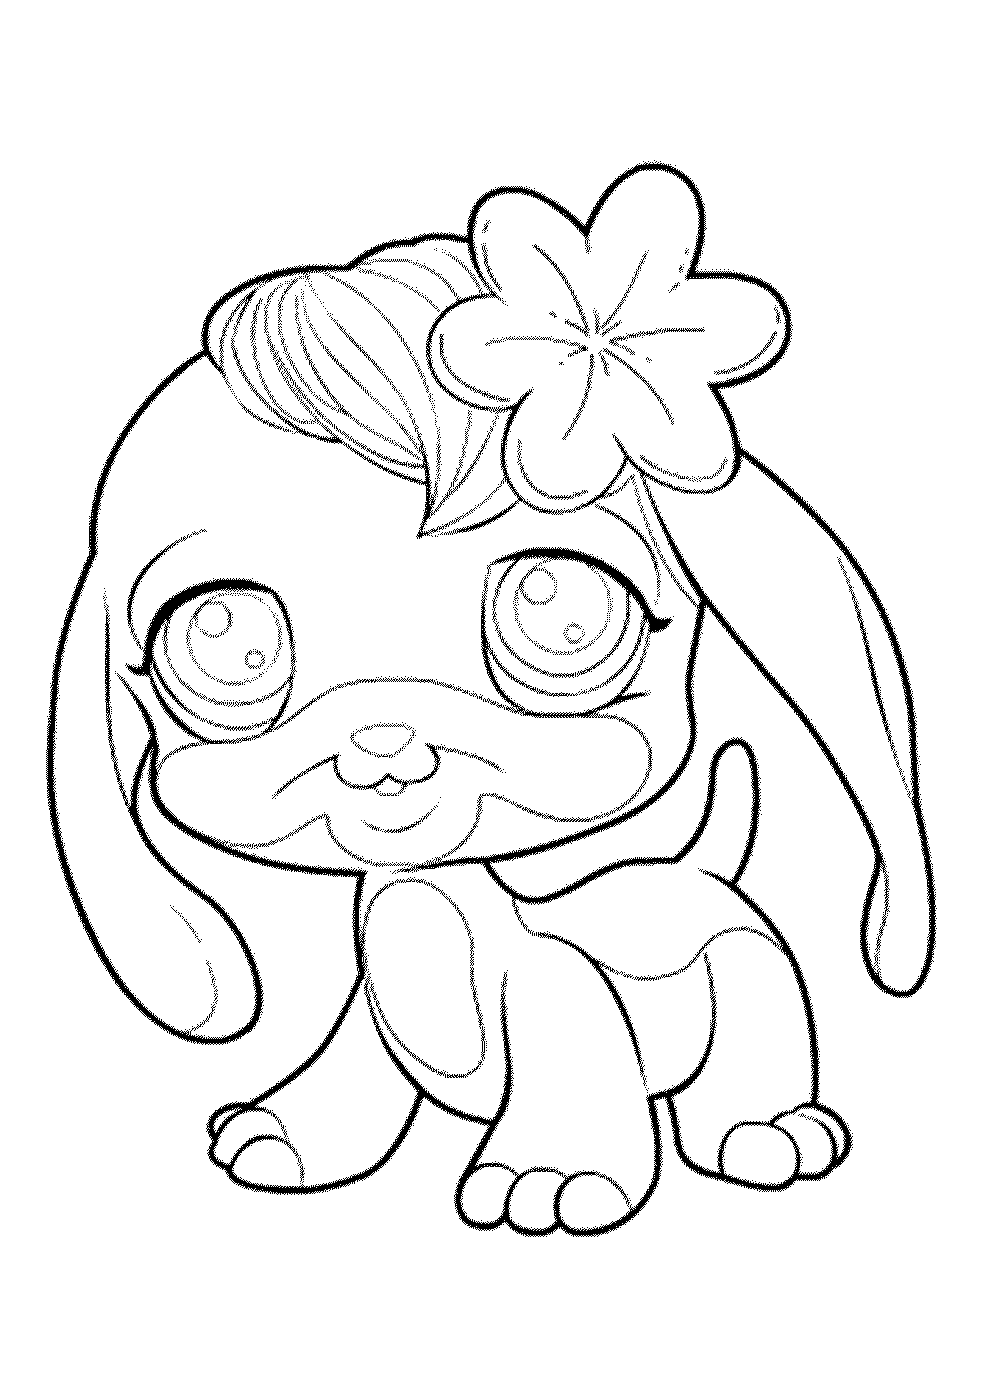 Free coloring pages littlest pet shop - Elegant Free Littlest Pet Shop Coloring Pages Printable Kids Colouring Pages With My Little Pet Shop Coloring Pages